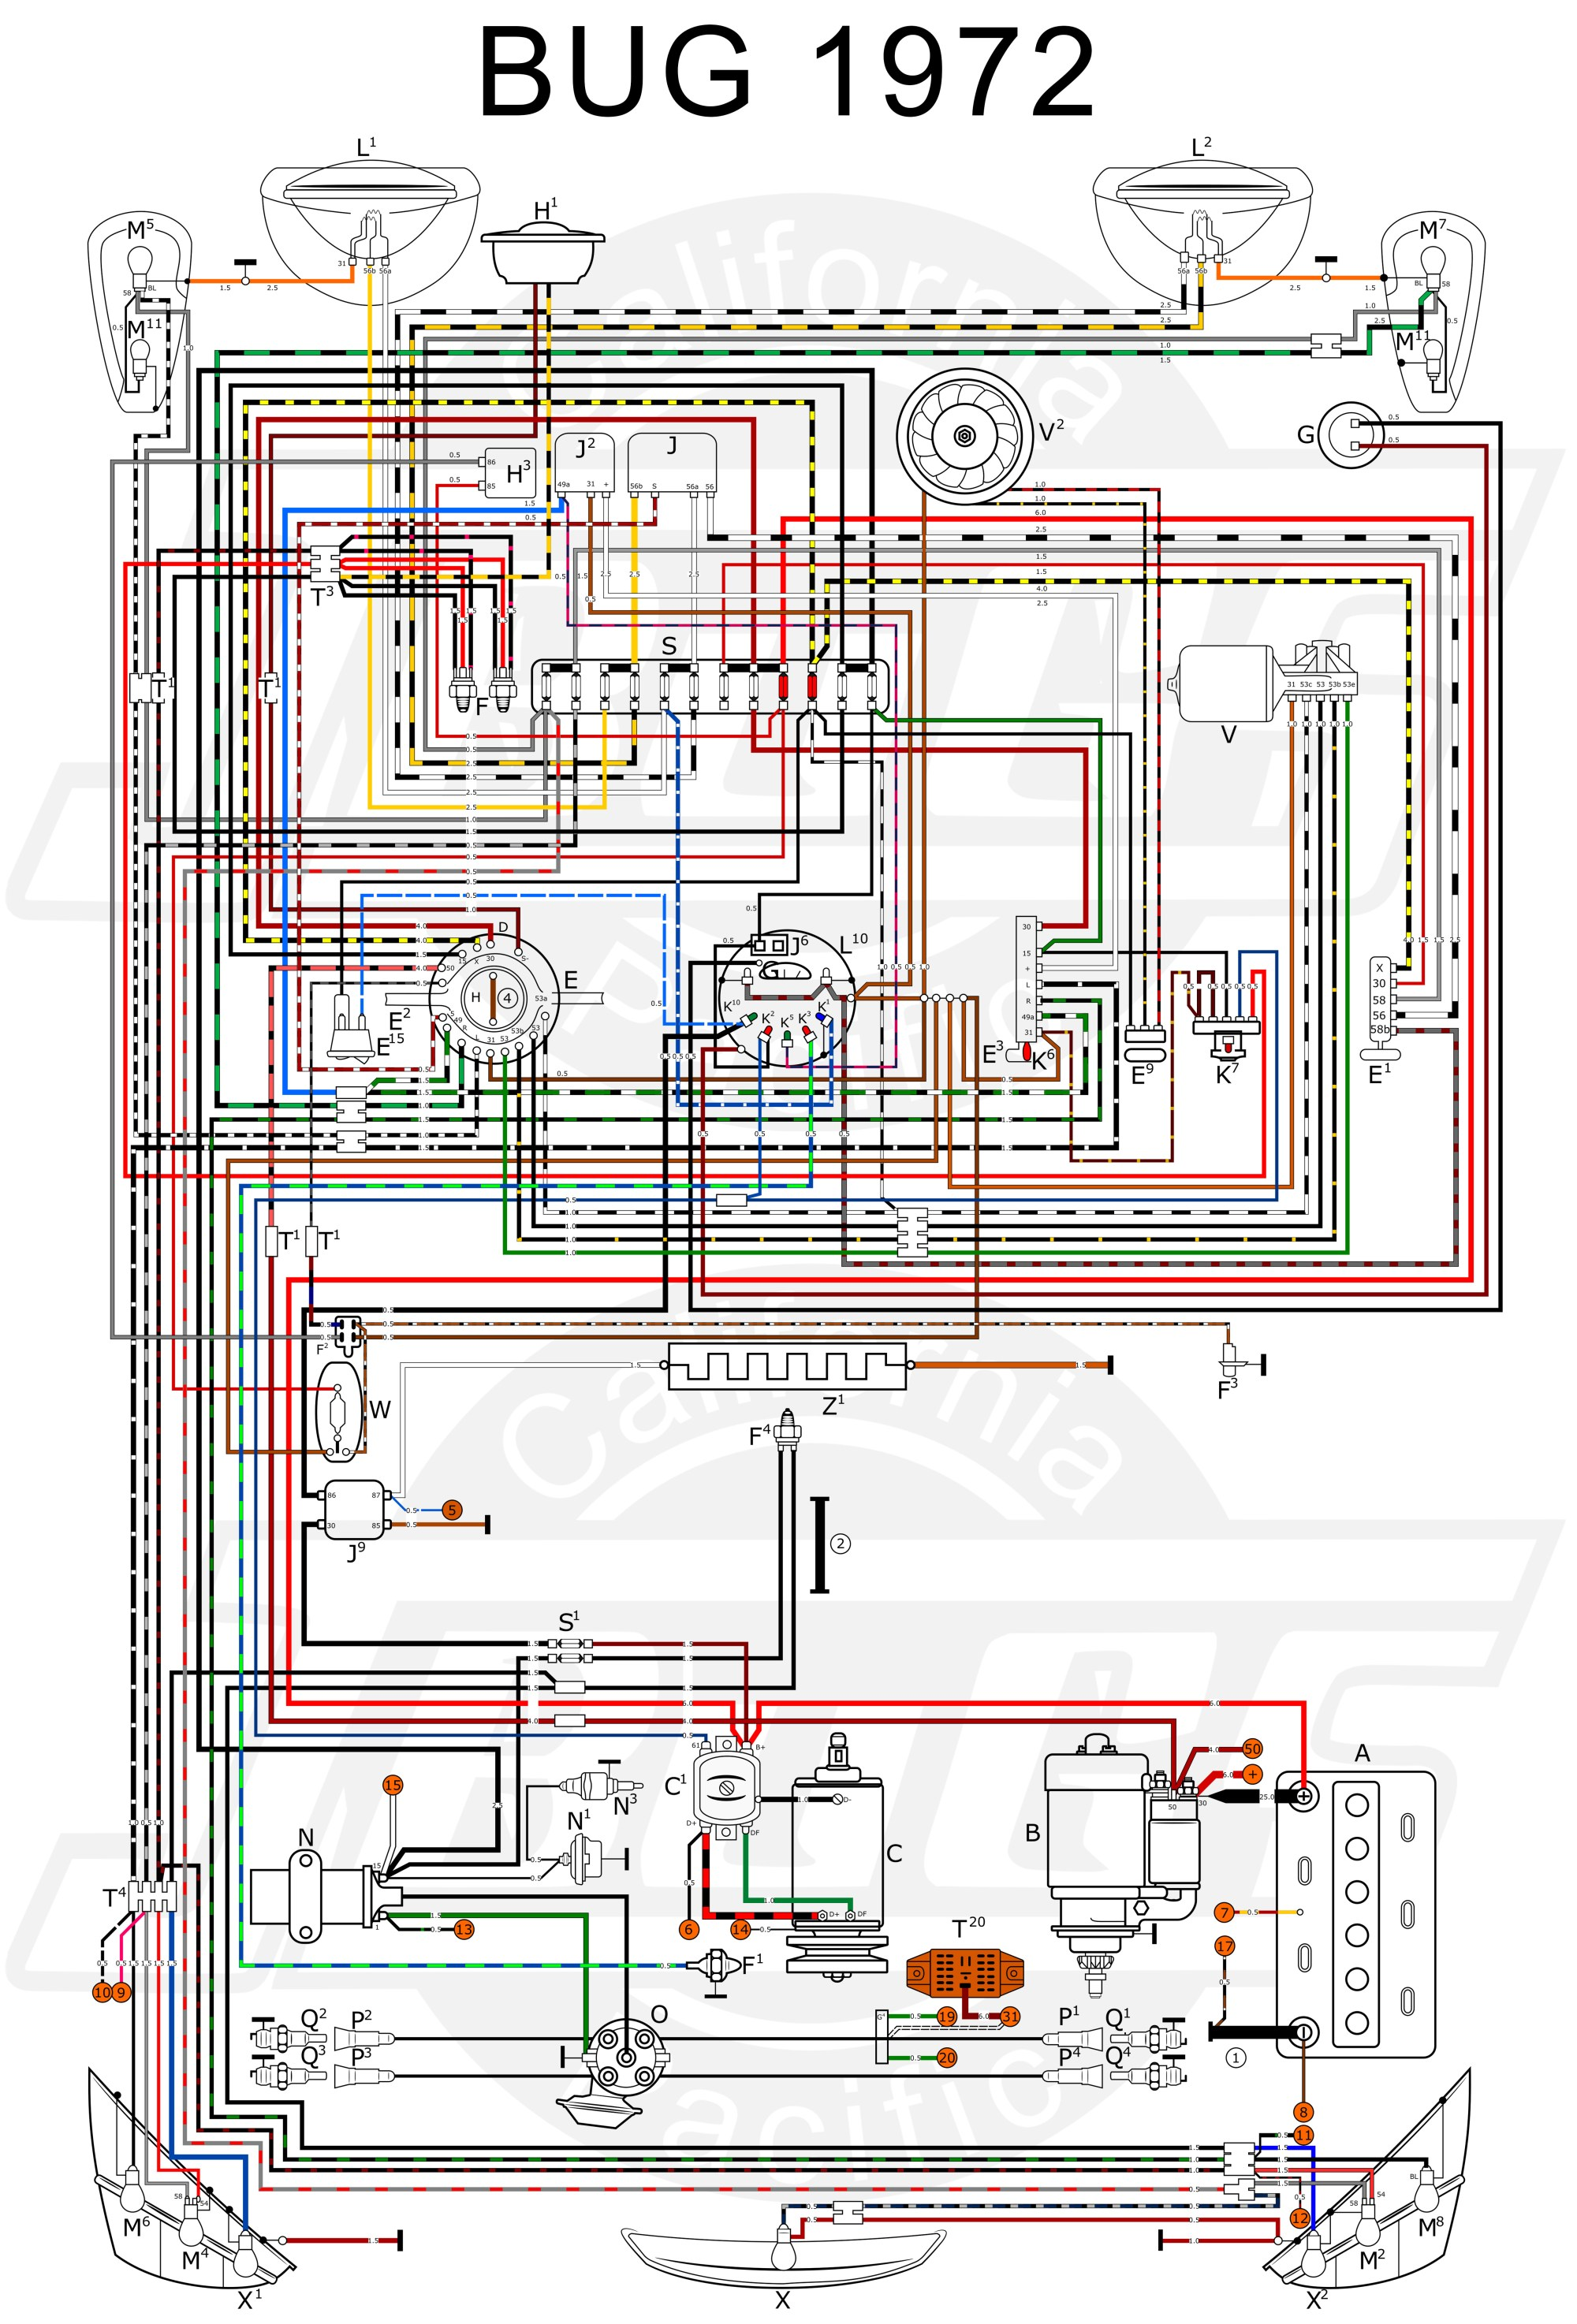 hight resolution of 1978 vw wiring diagram wiring diagram database 1978 vw super beetle wiring diagram 1978 vw wiring diagram